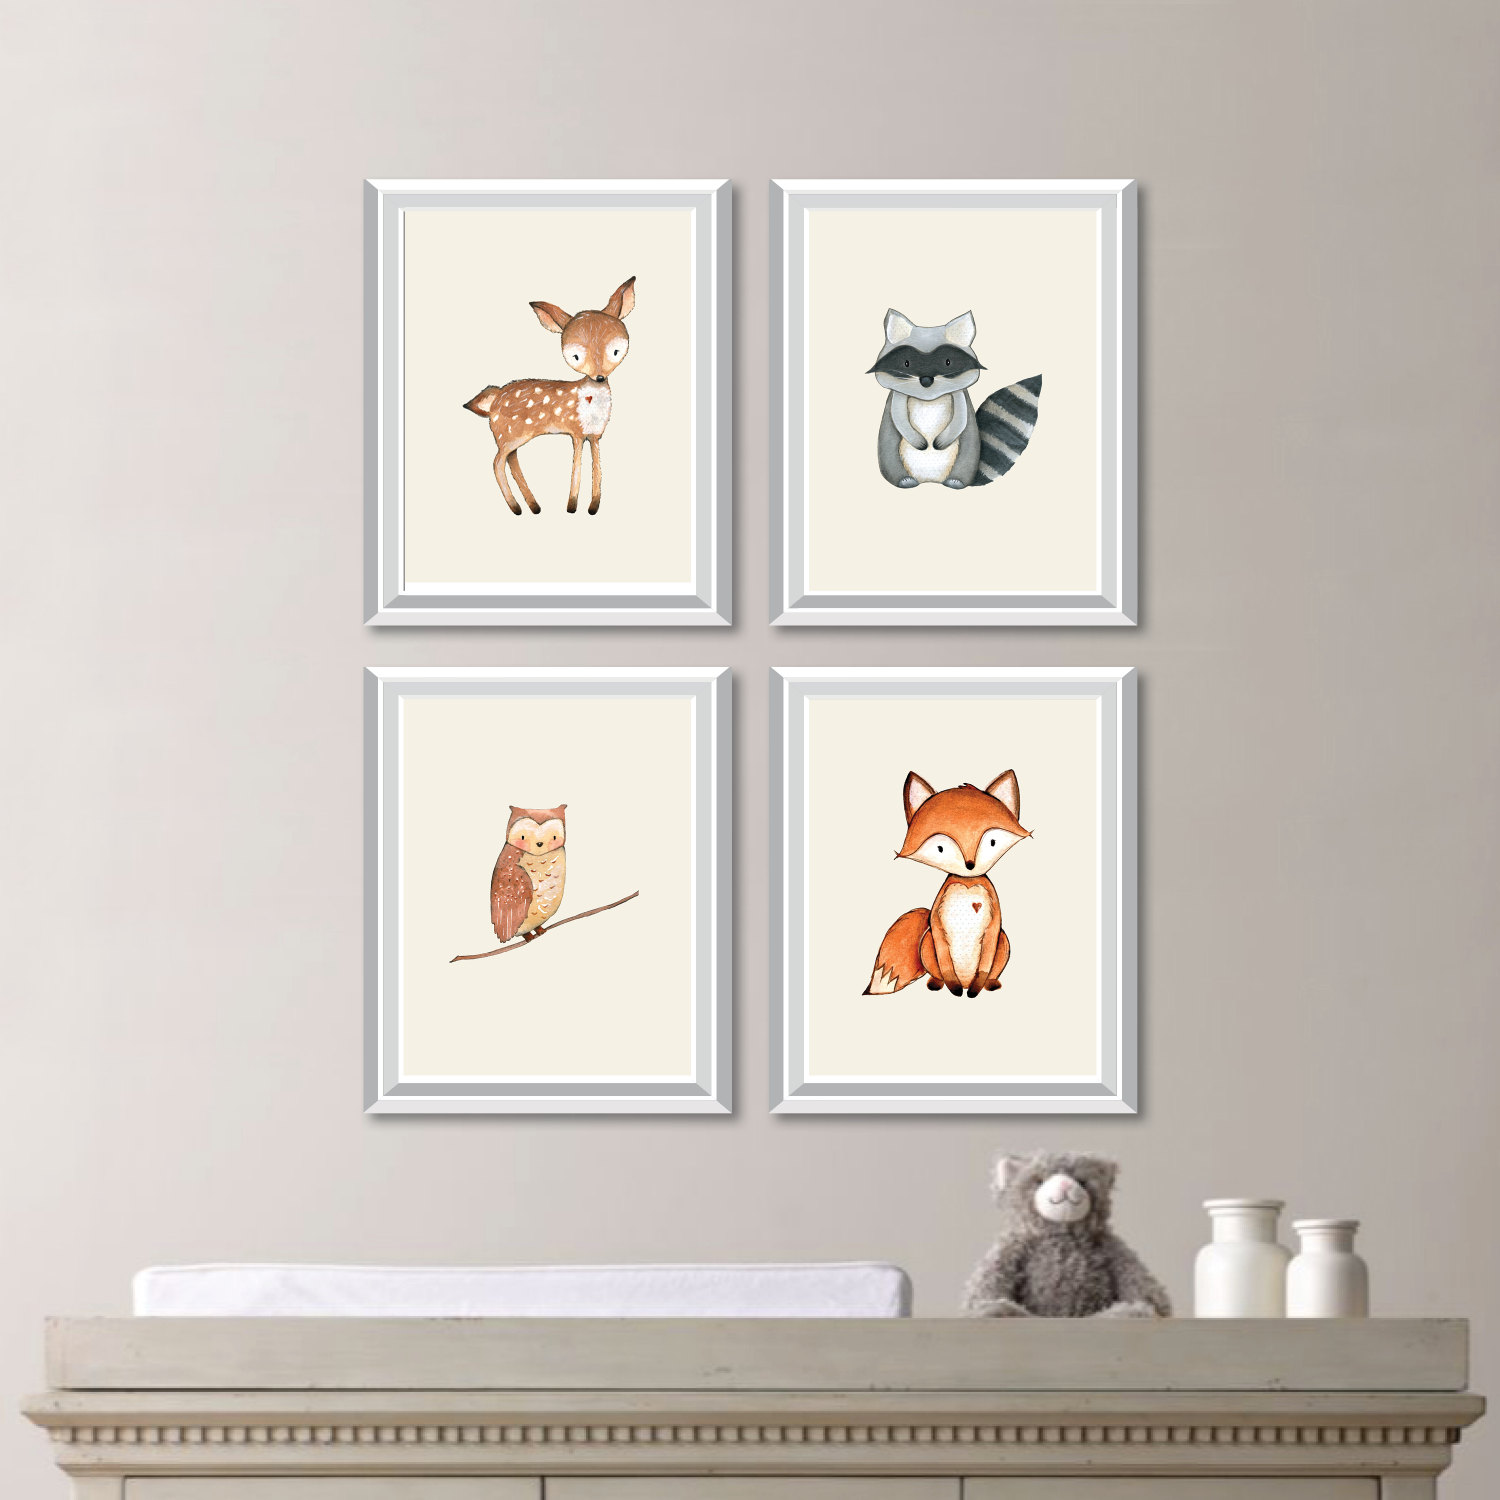 baby nursery art woodland nursery art woodland nursery decor forest animals forest friends forest nursery bedroom art canvas ns806 - Woodland Nursery Decor